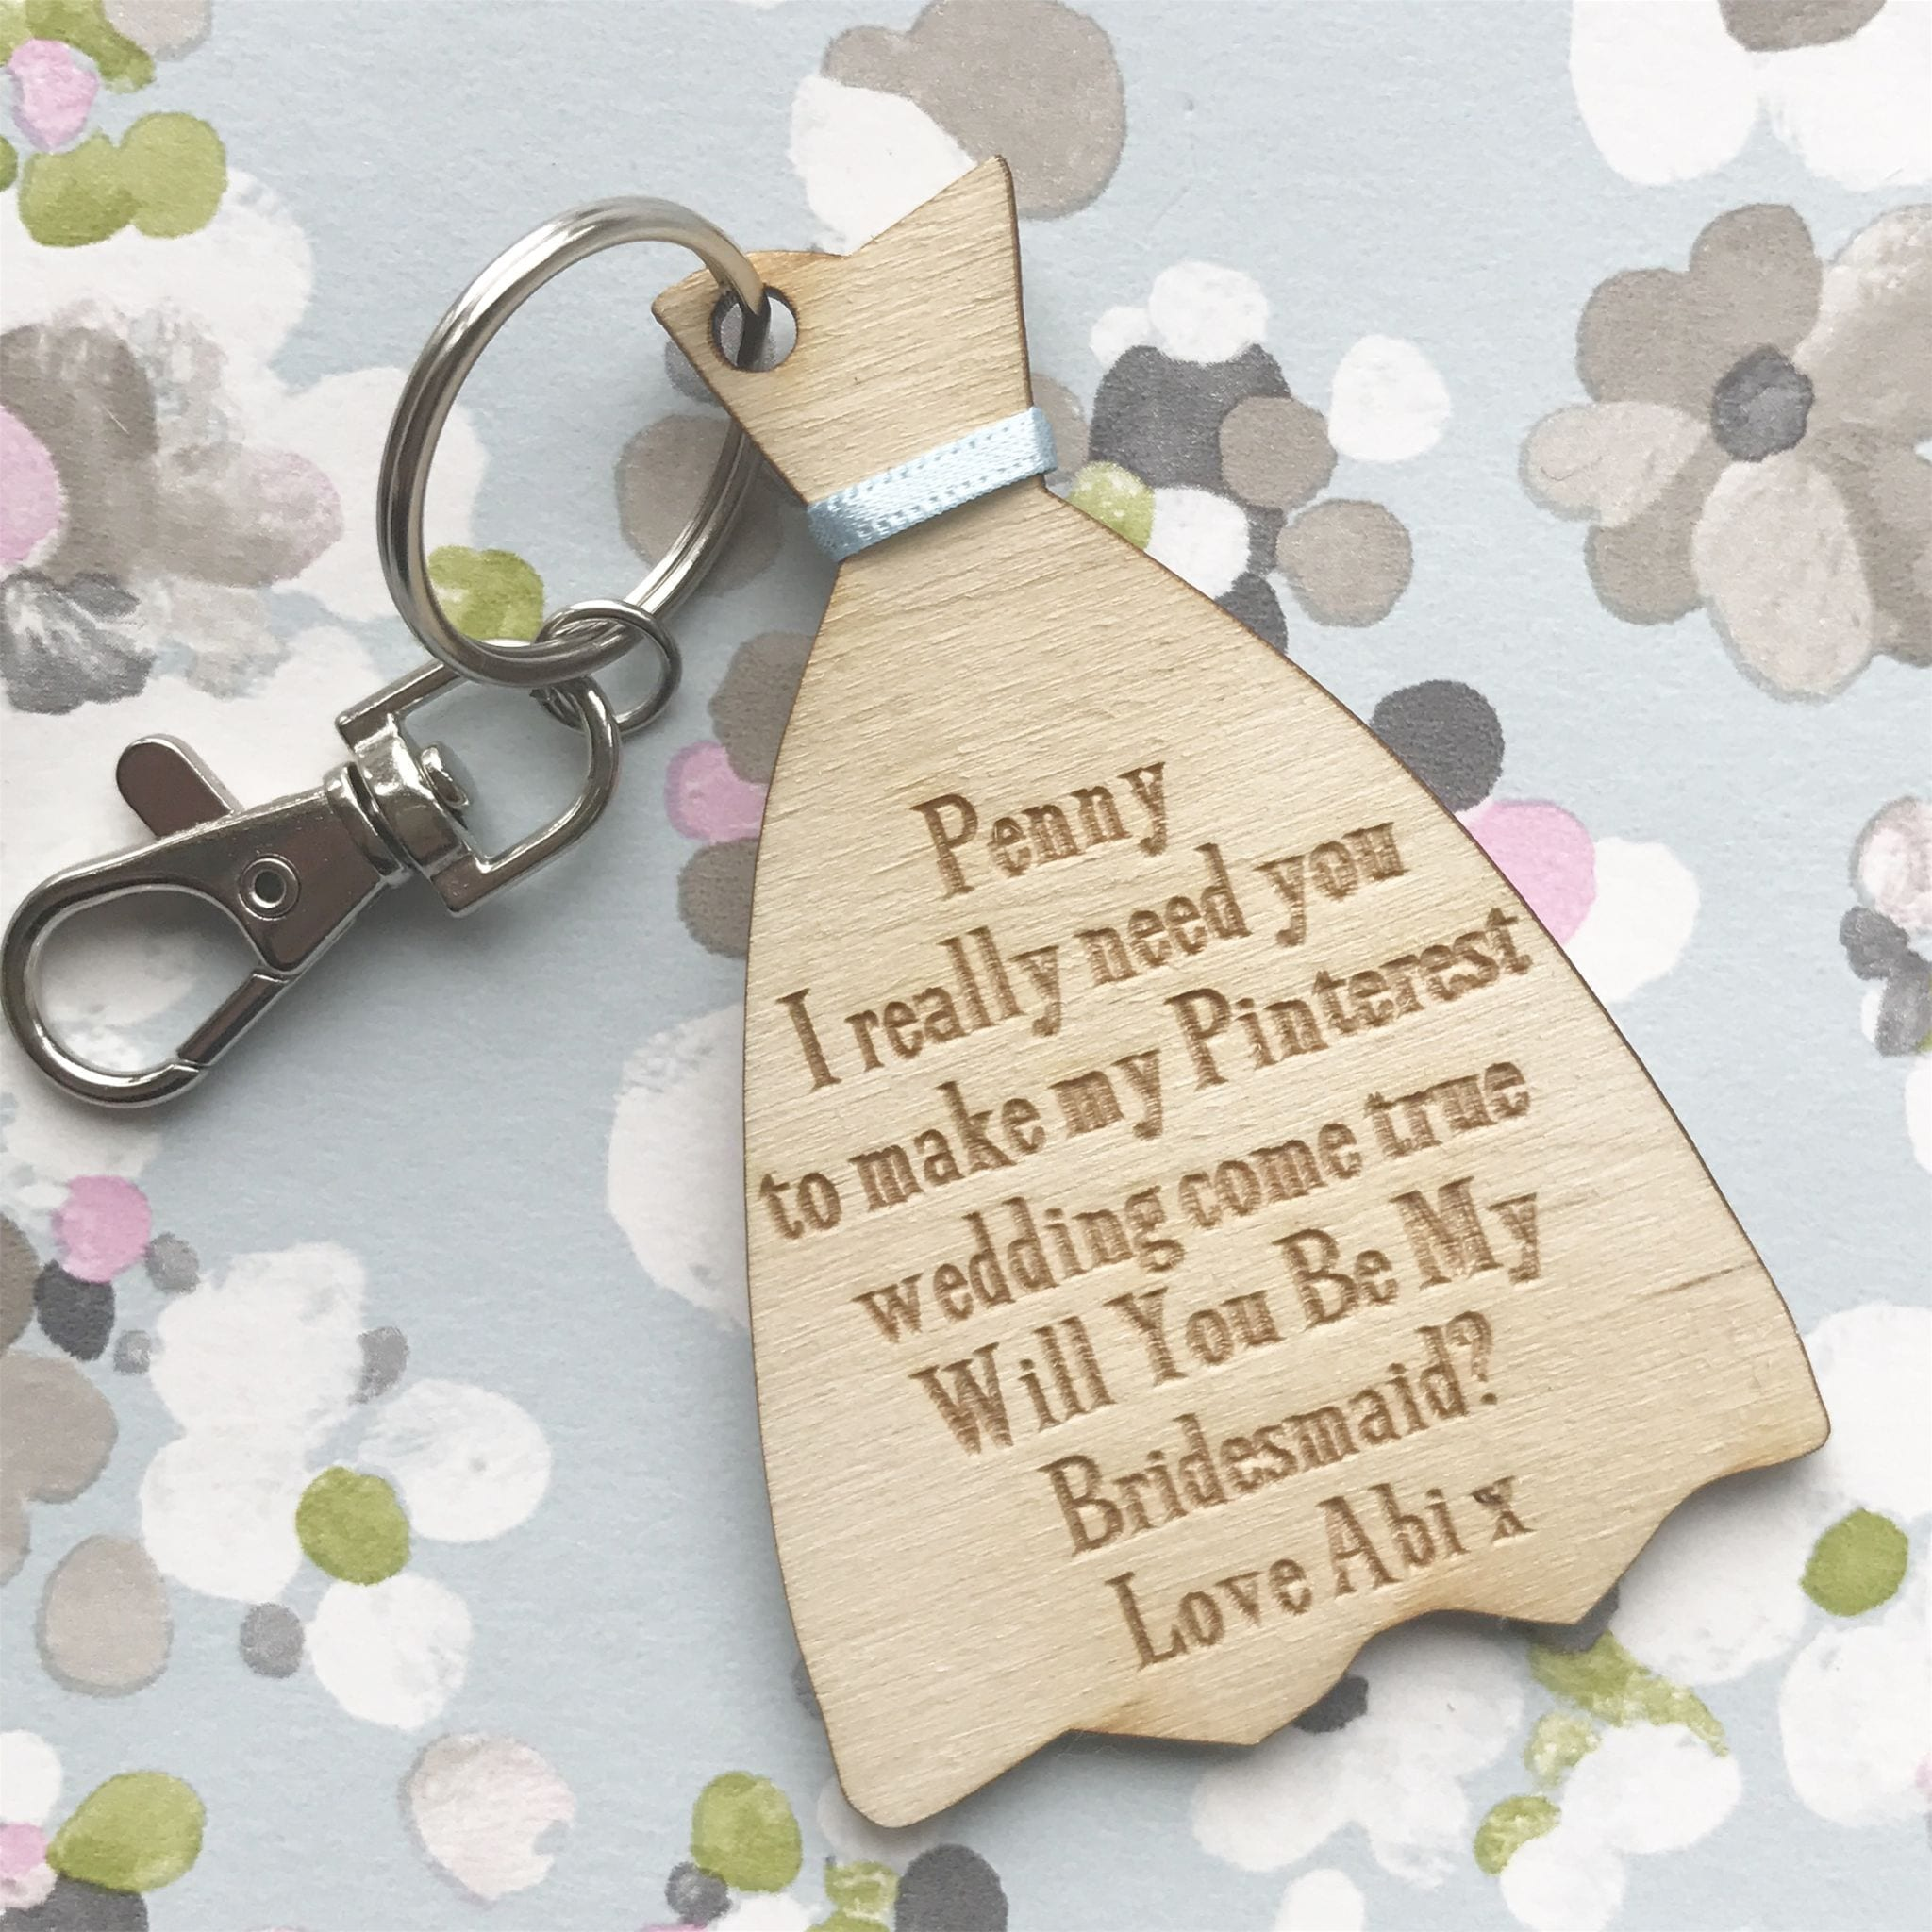 will-you-be-my-bridesmaid-pinterest-dress-keyring-or-magnet-20132-p.jpg